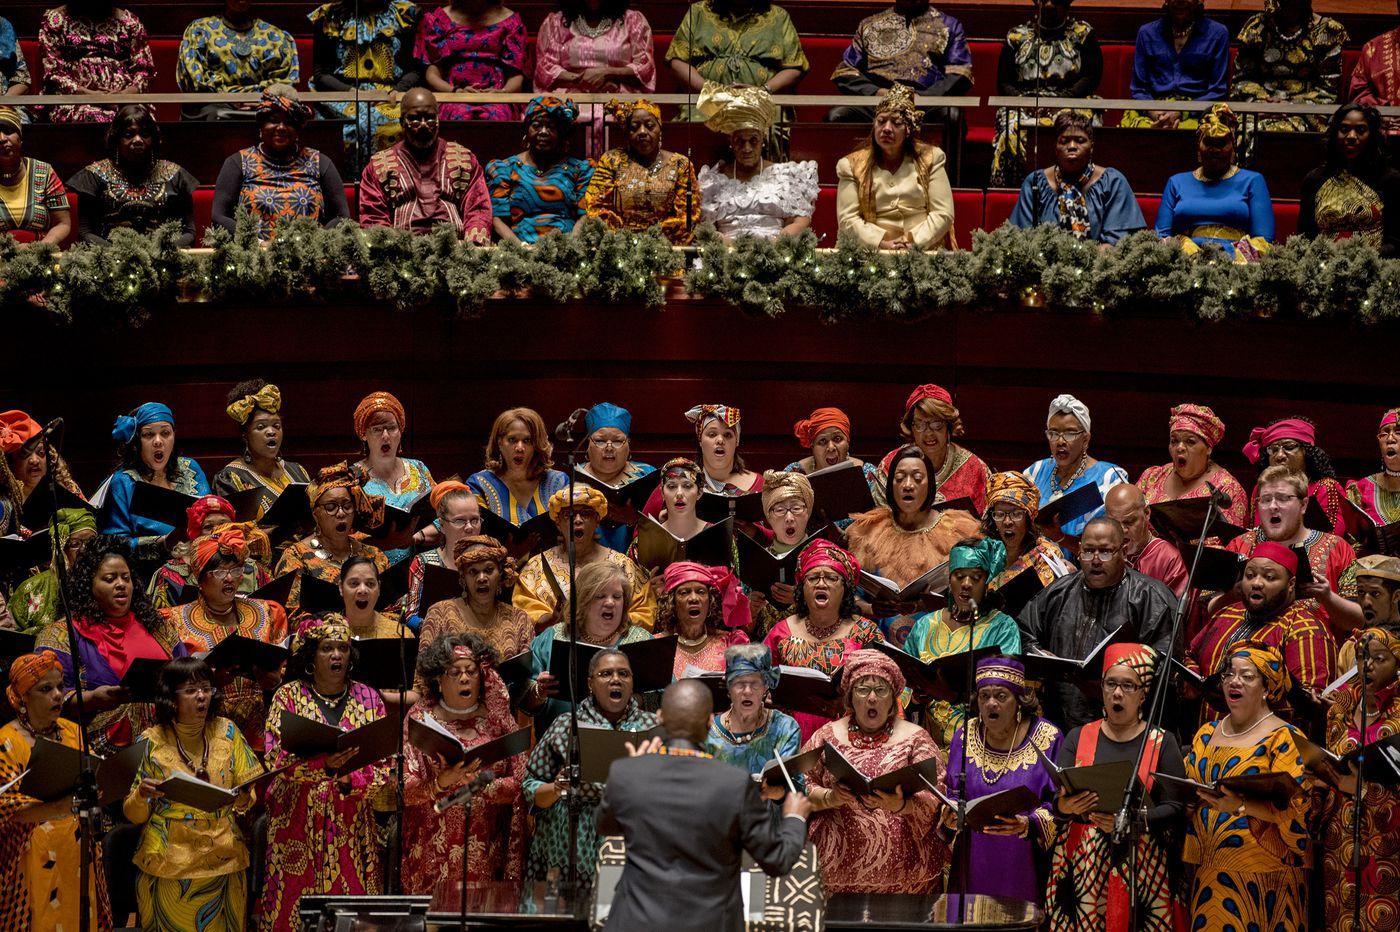 'I got on my shoutin' shoes': Soulful Christmas gathers the region's best gospel choirs